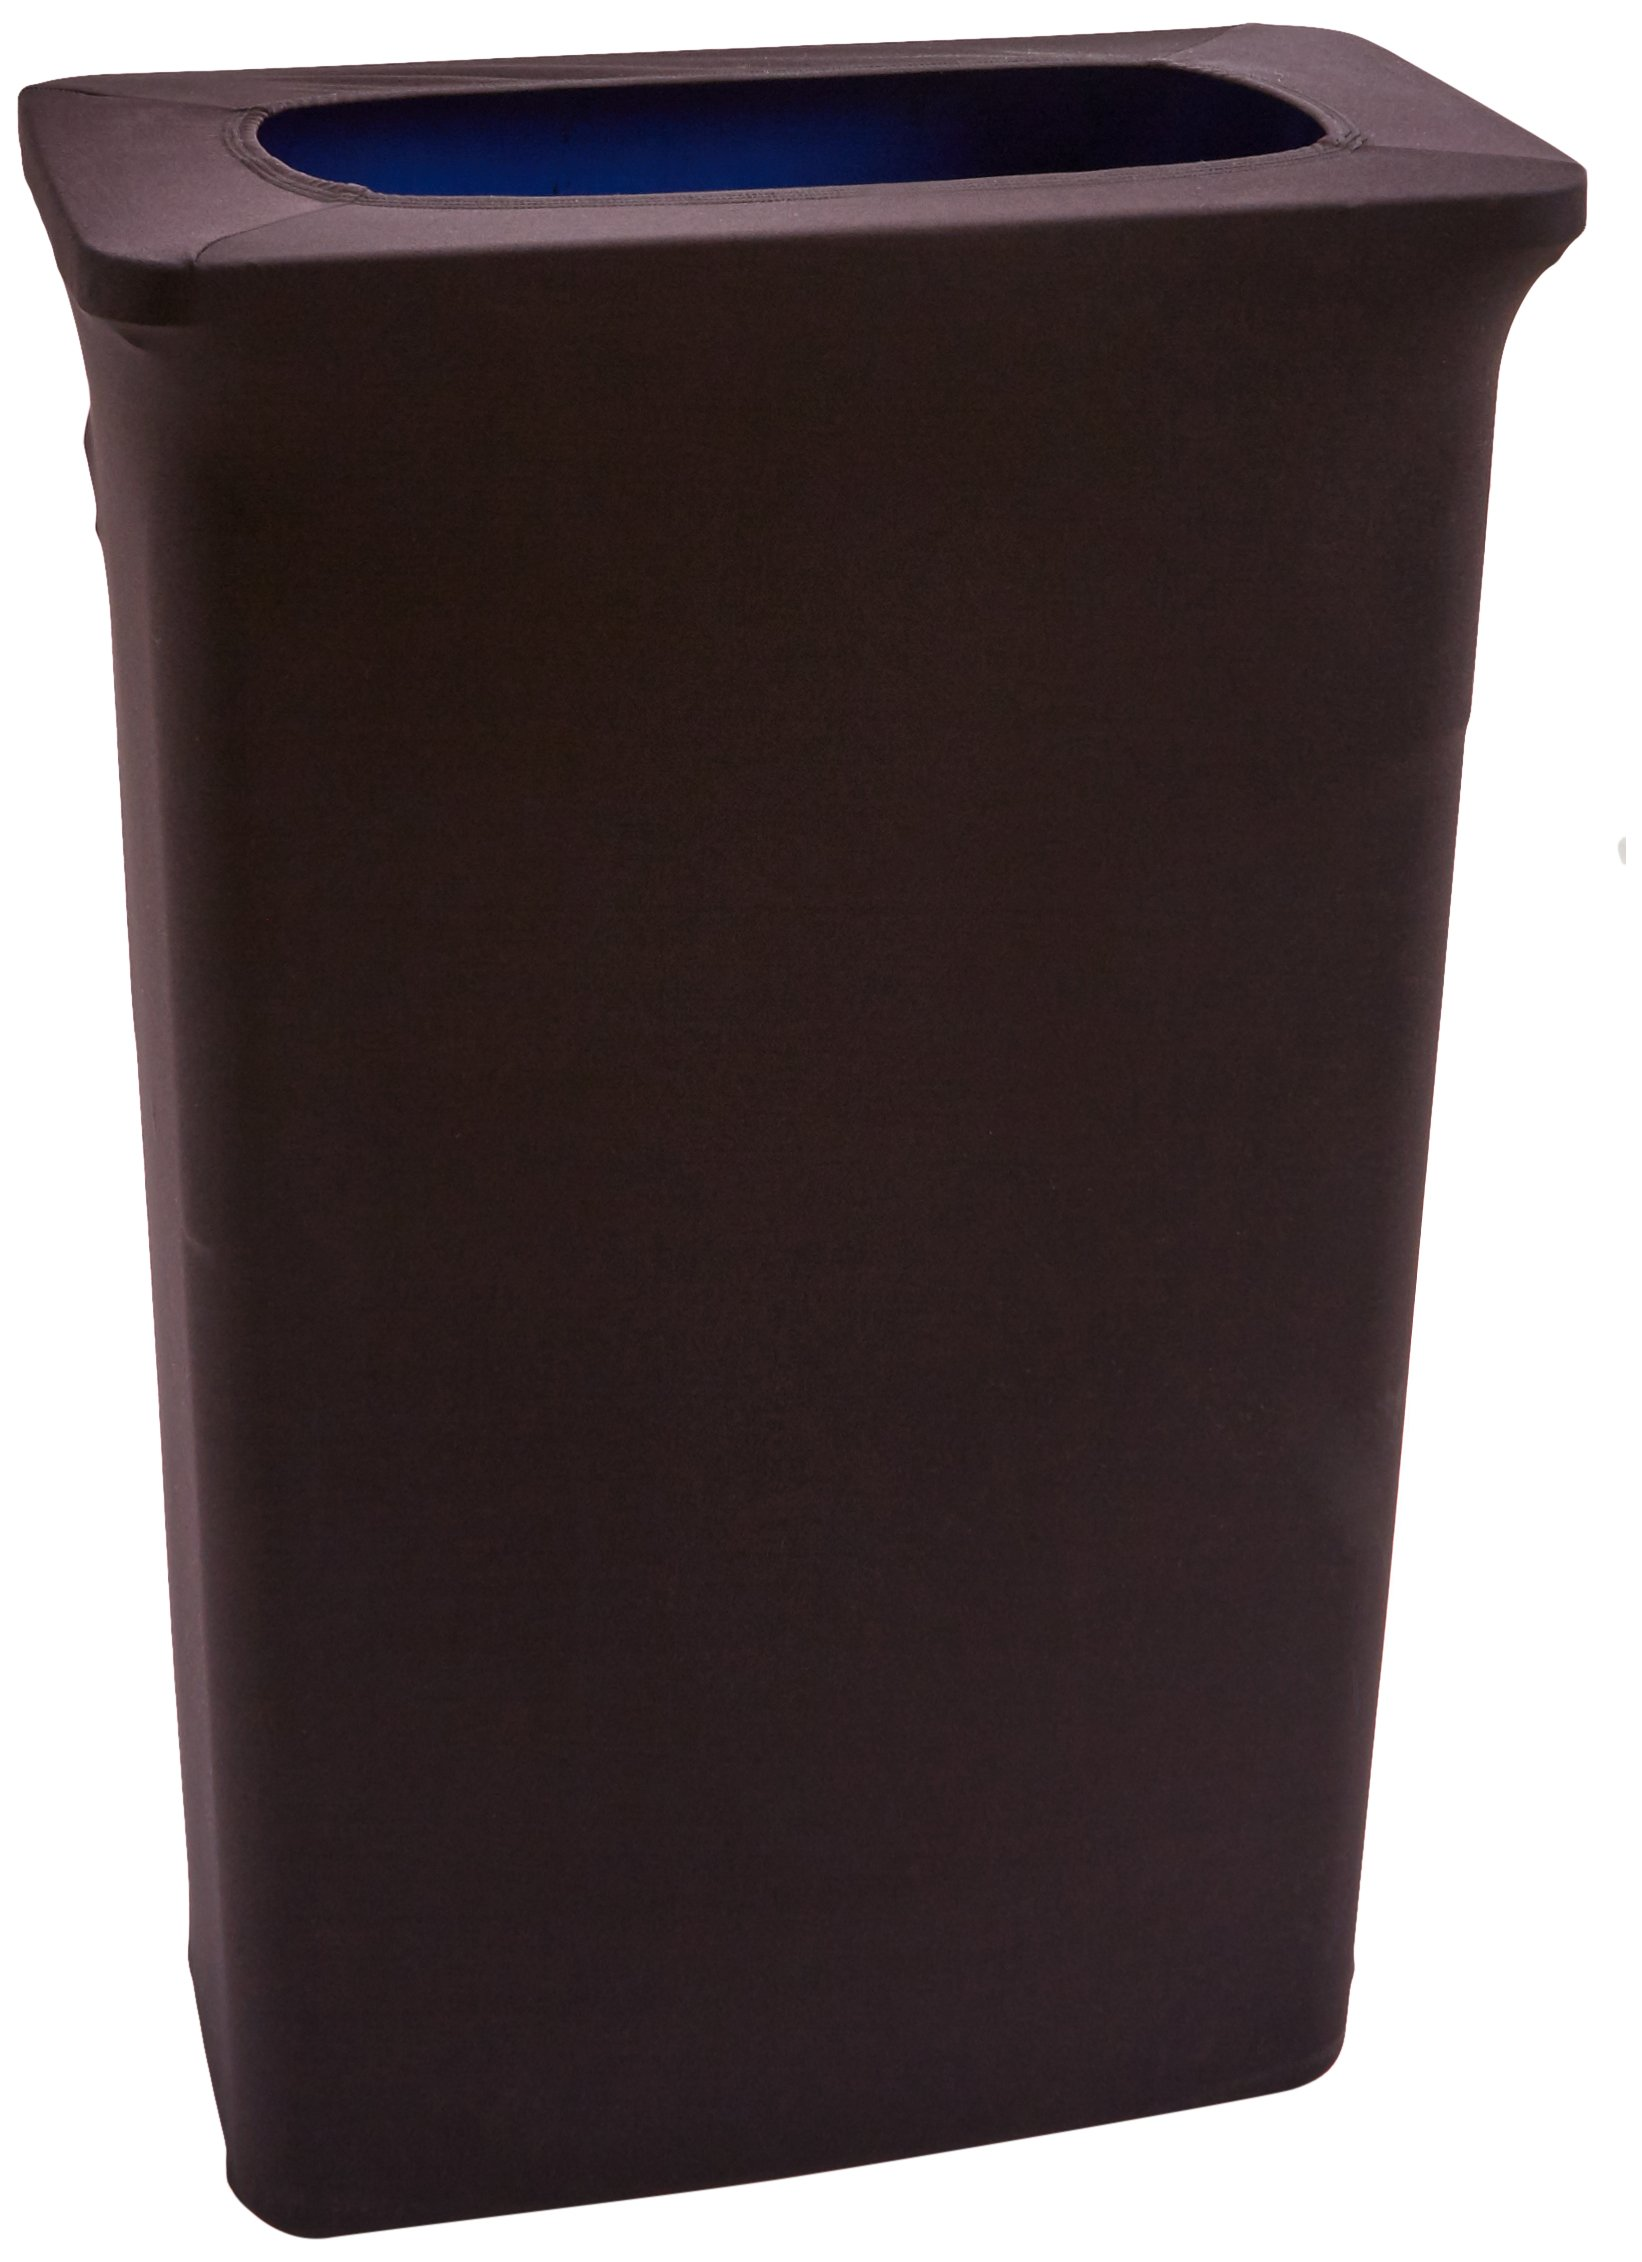 LA Linen Stretch Spandex Trash Can Cover for Slim Jim 23-Gallon,Black